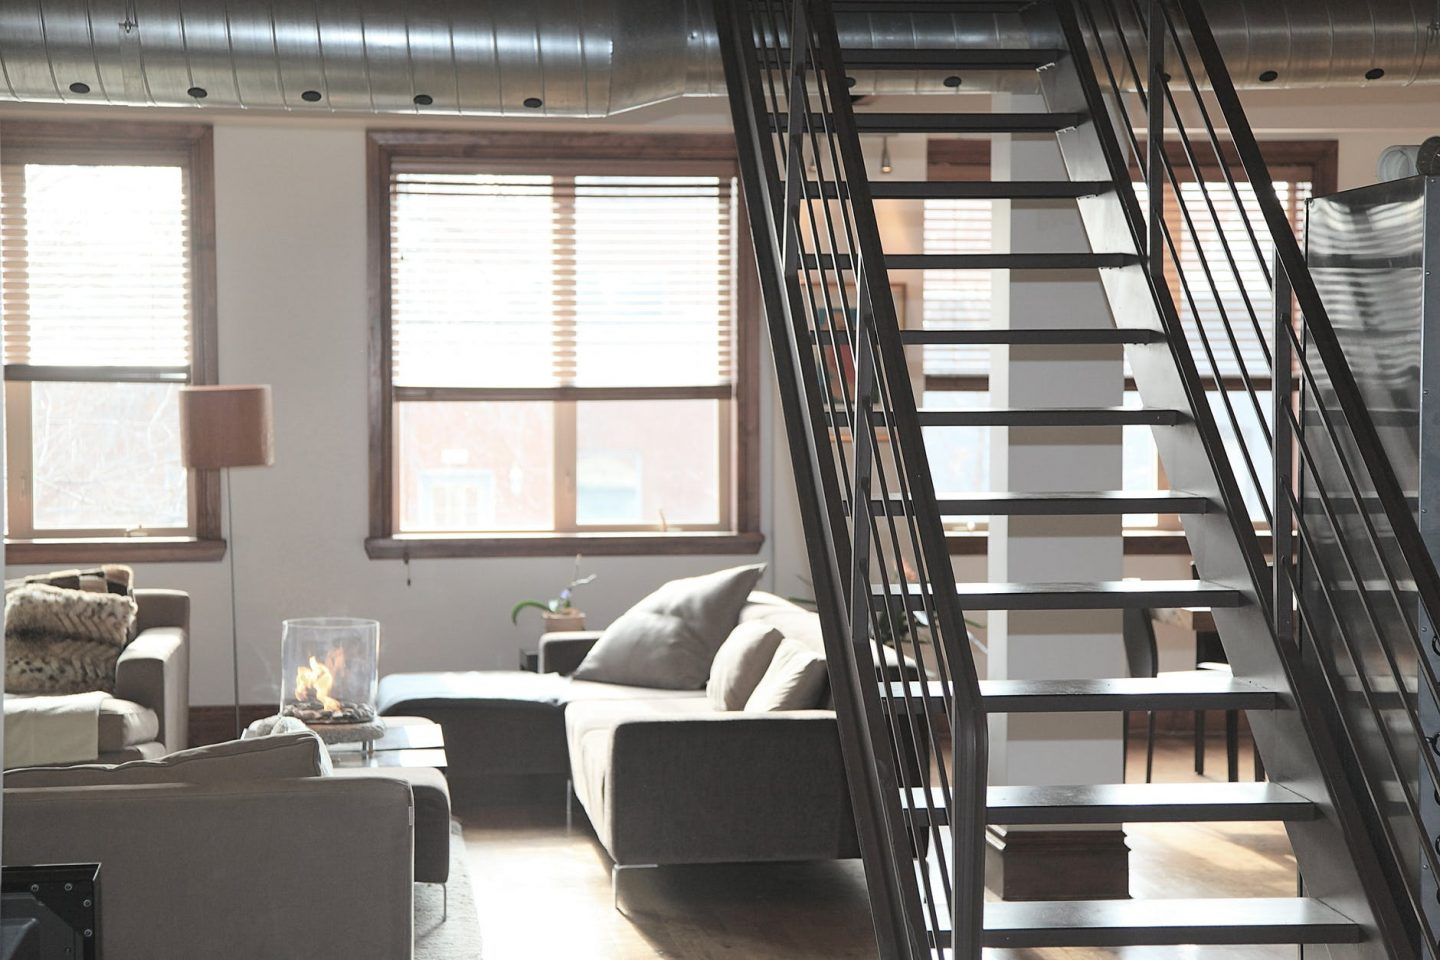 Improve your humble abode: stairs from living room up to 1st floor in a house.